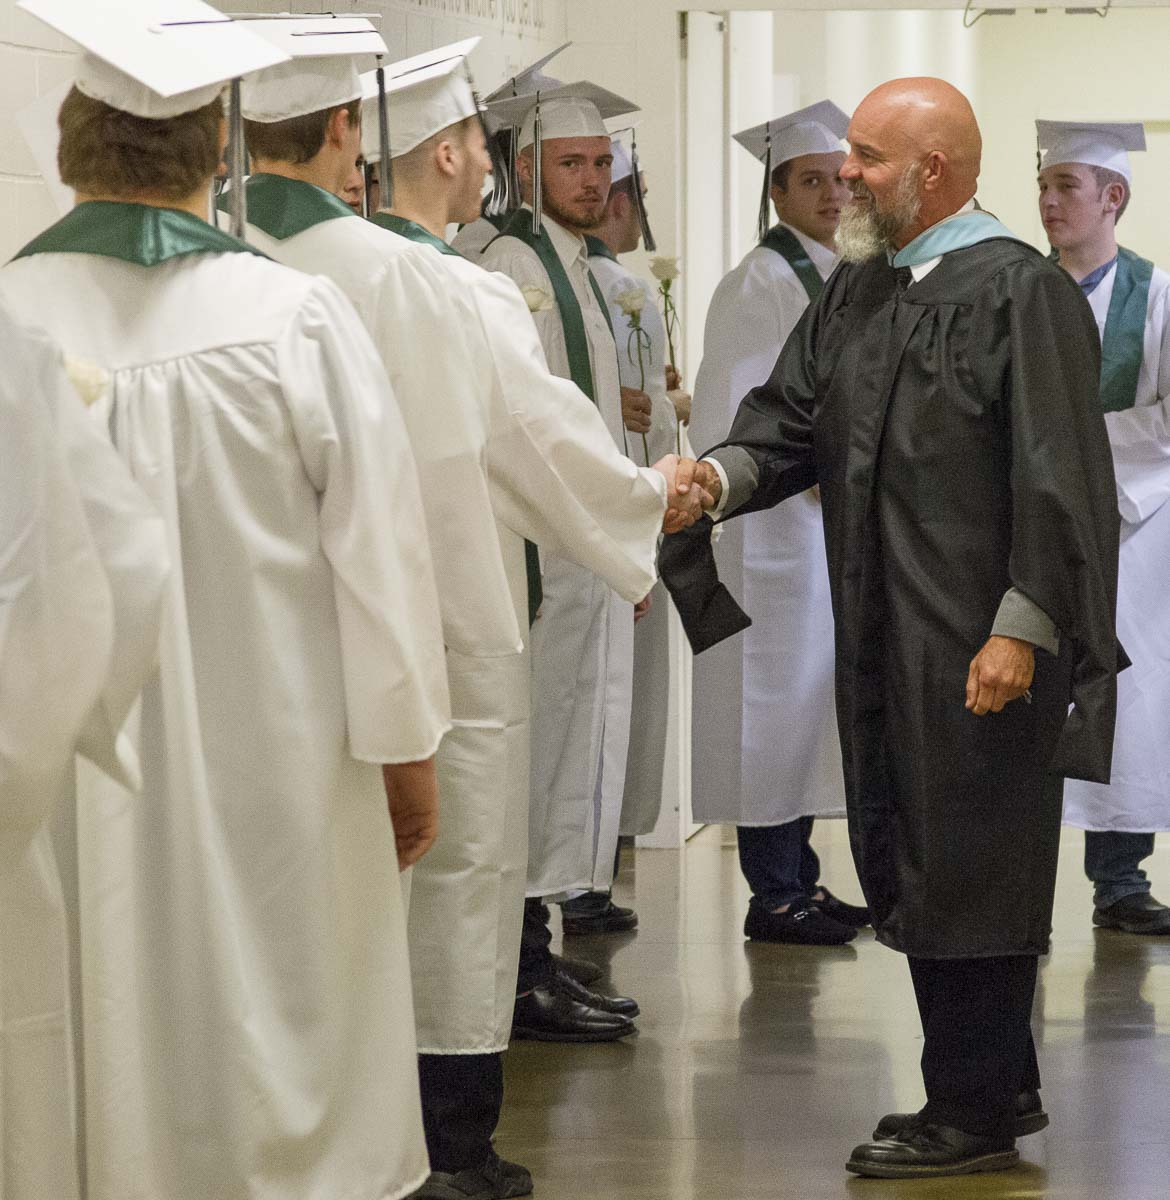 John Shoup made a practice of meeting, knowing, following up with, and caring about the students at his school. Photo courtesy of Woodland Public Schools